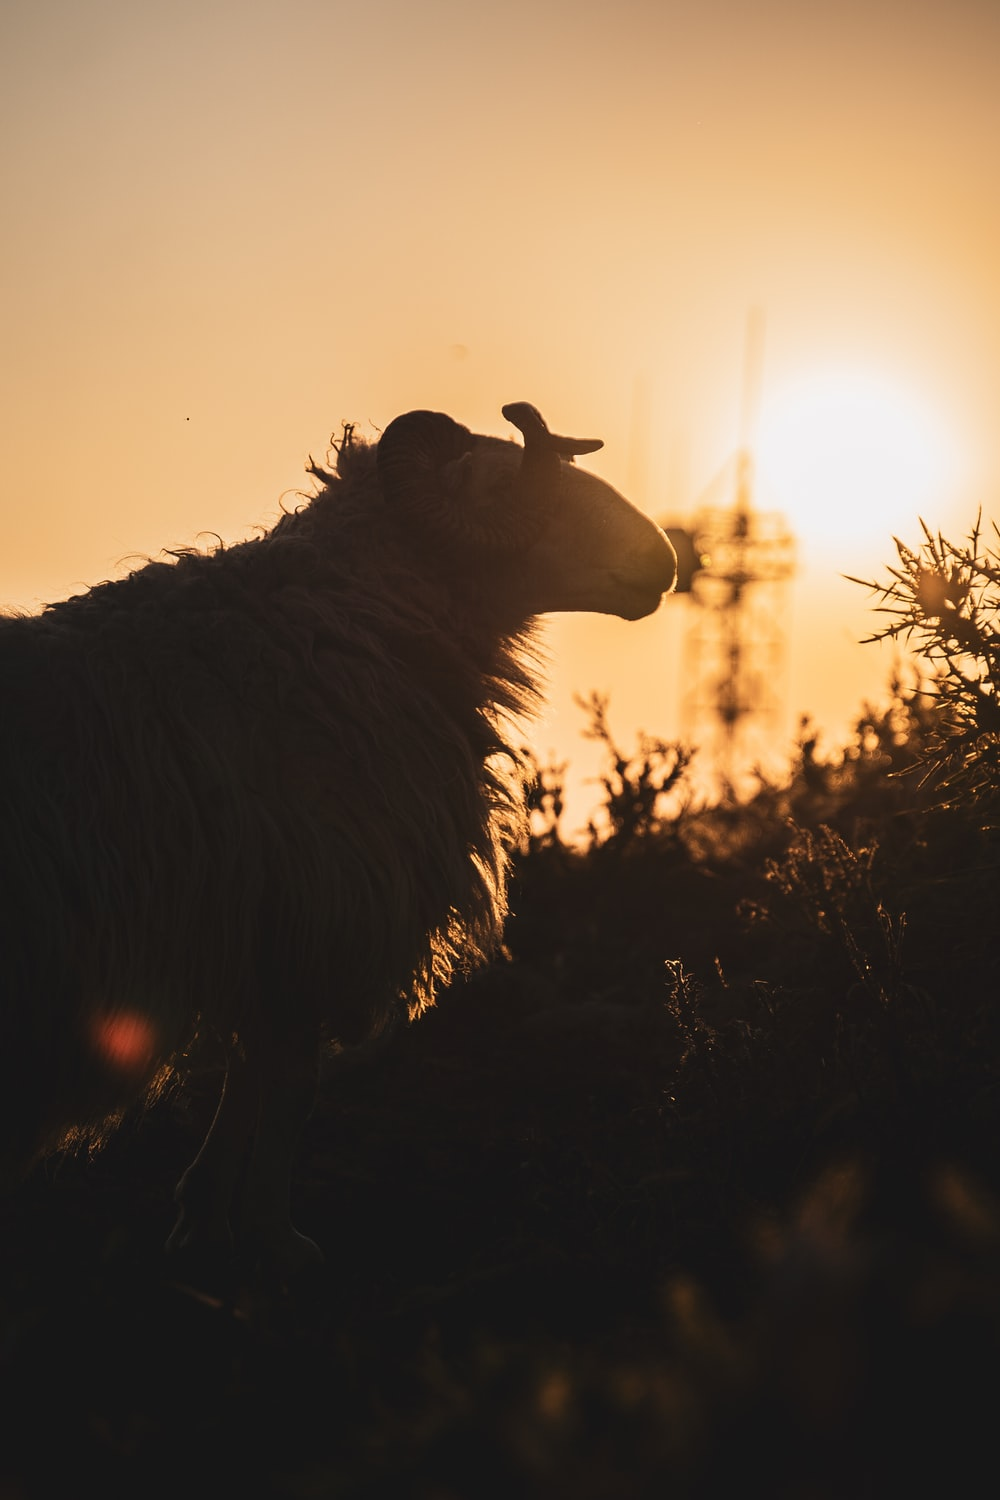 silhouette of a horse during sunset